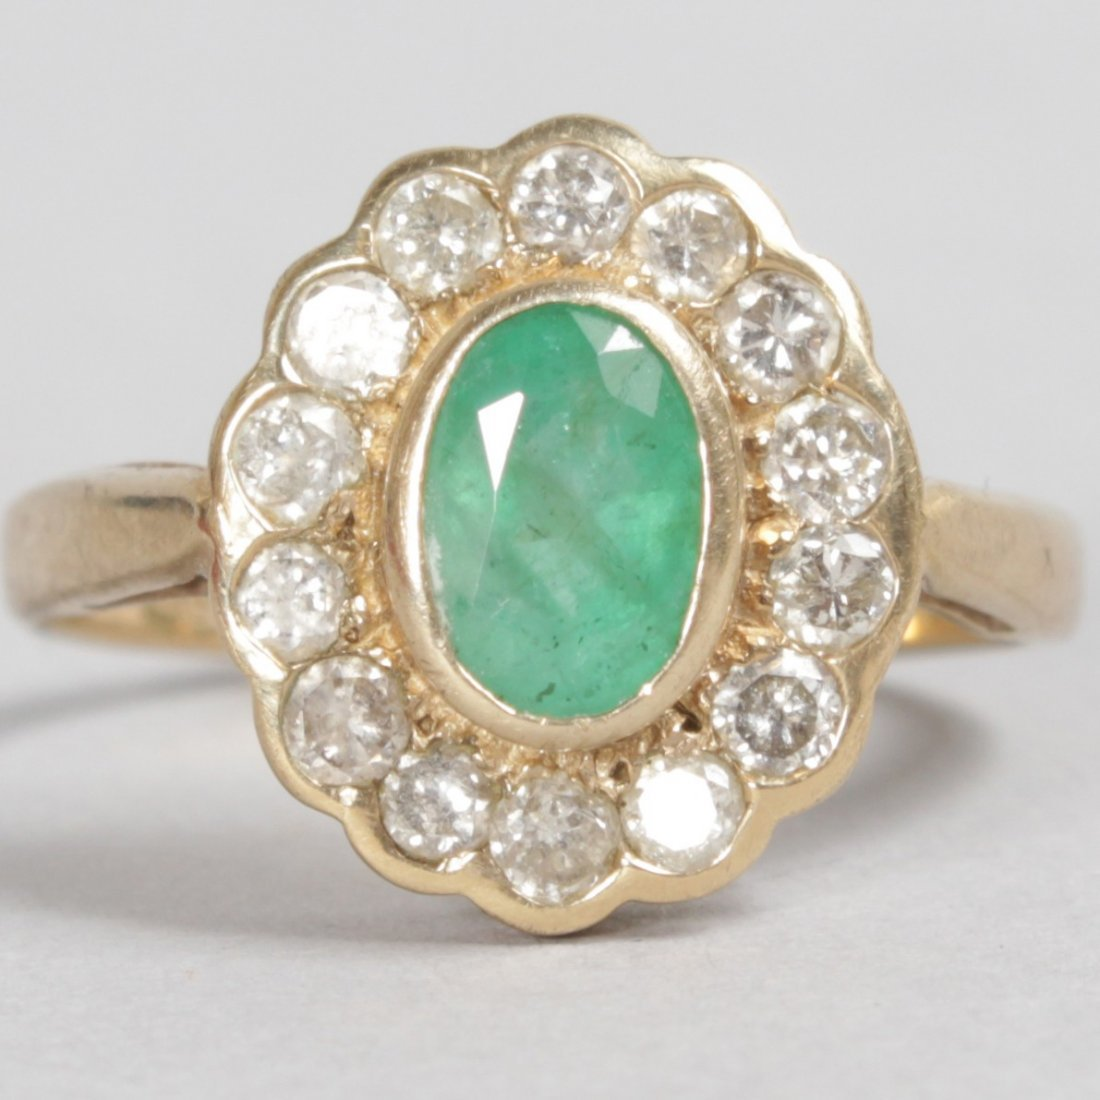 A 9CT YELLOW GOLD, EMERALD AND DIAMOND OVAL CLUSTER